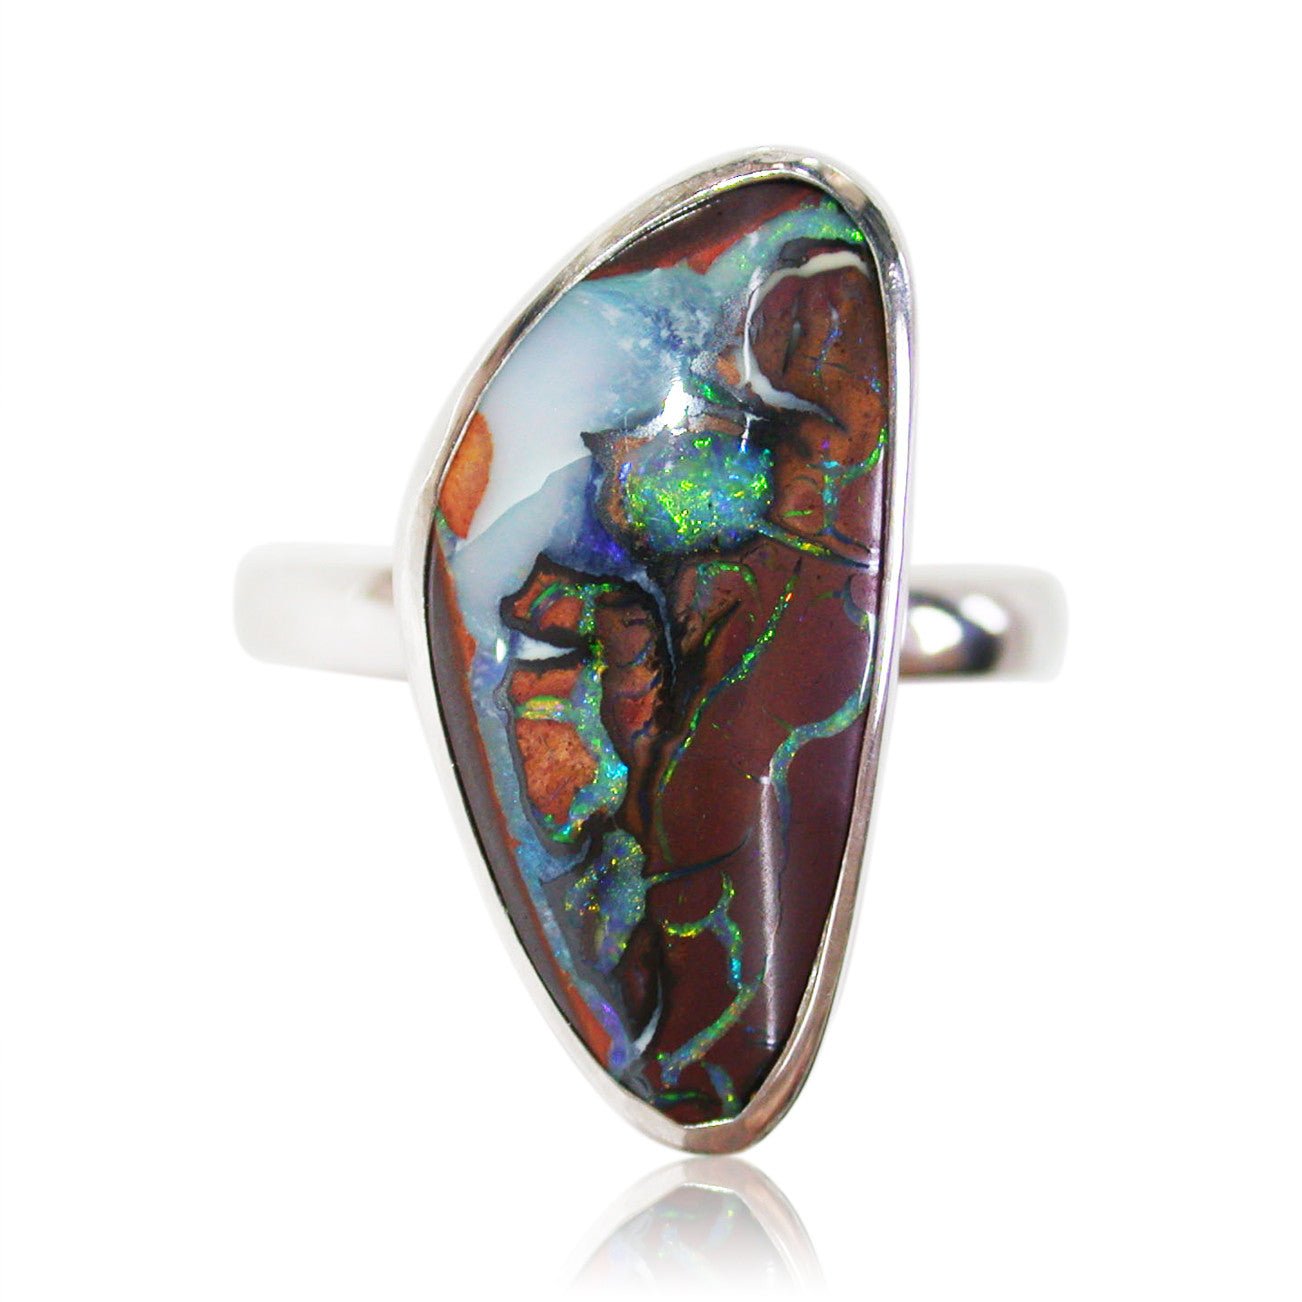 Koroit matrix opal sterling silver ring